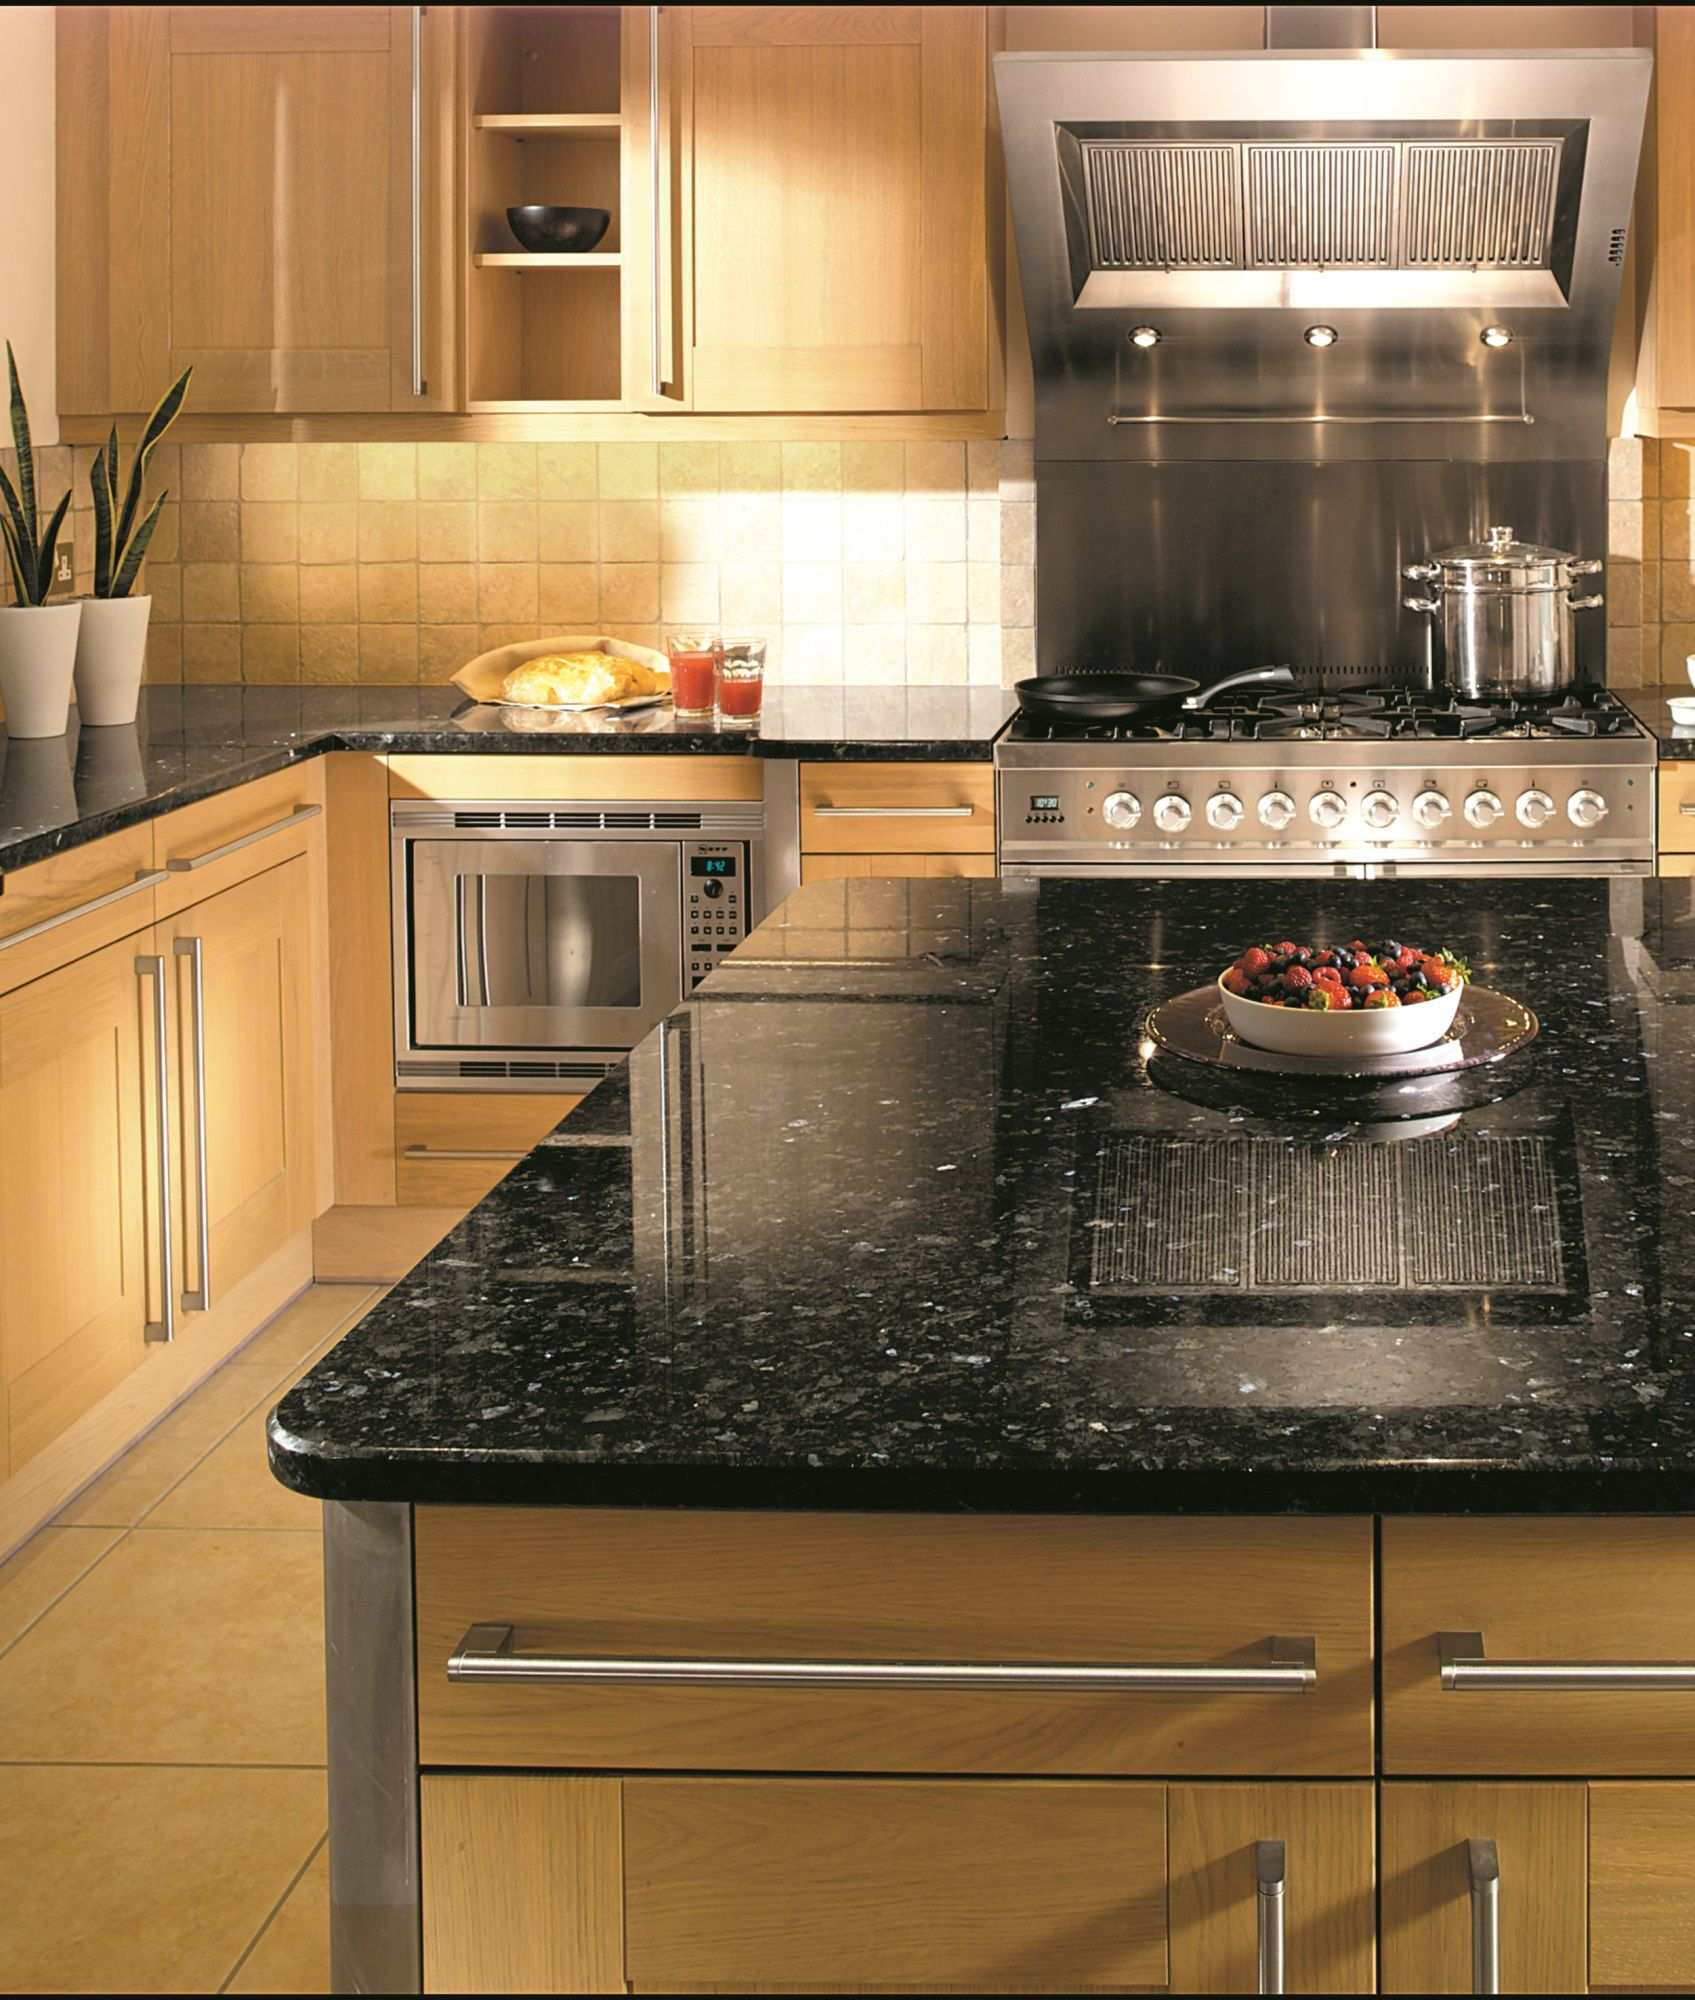 Kitchen Marble Worktops: Granite Kitchen Worktop By Landford Stone. Material Is Emerald Pearl (granite) With A Chamfer